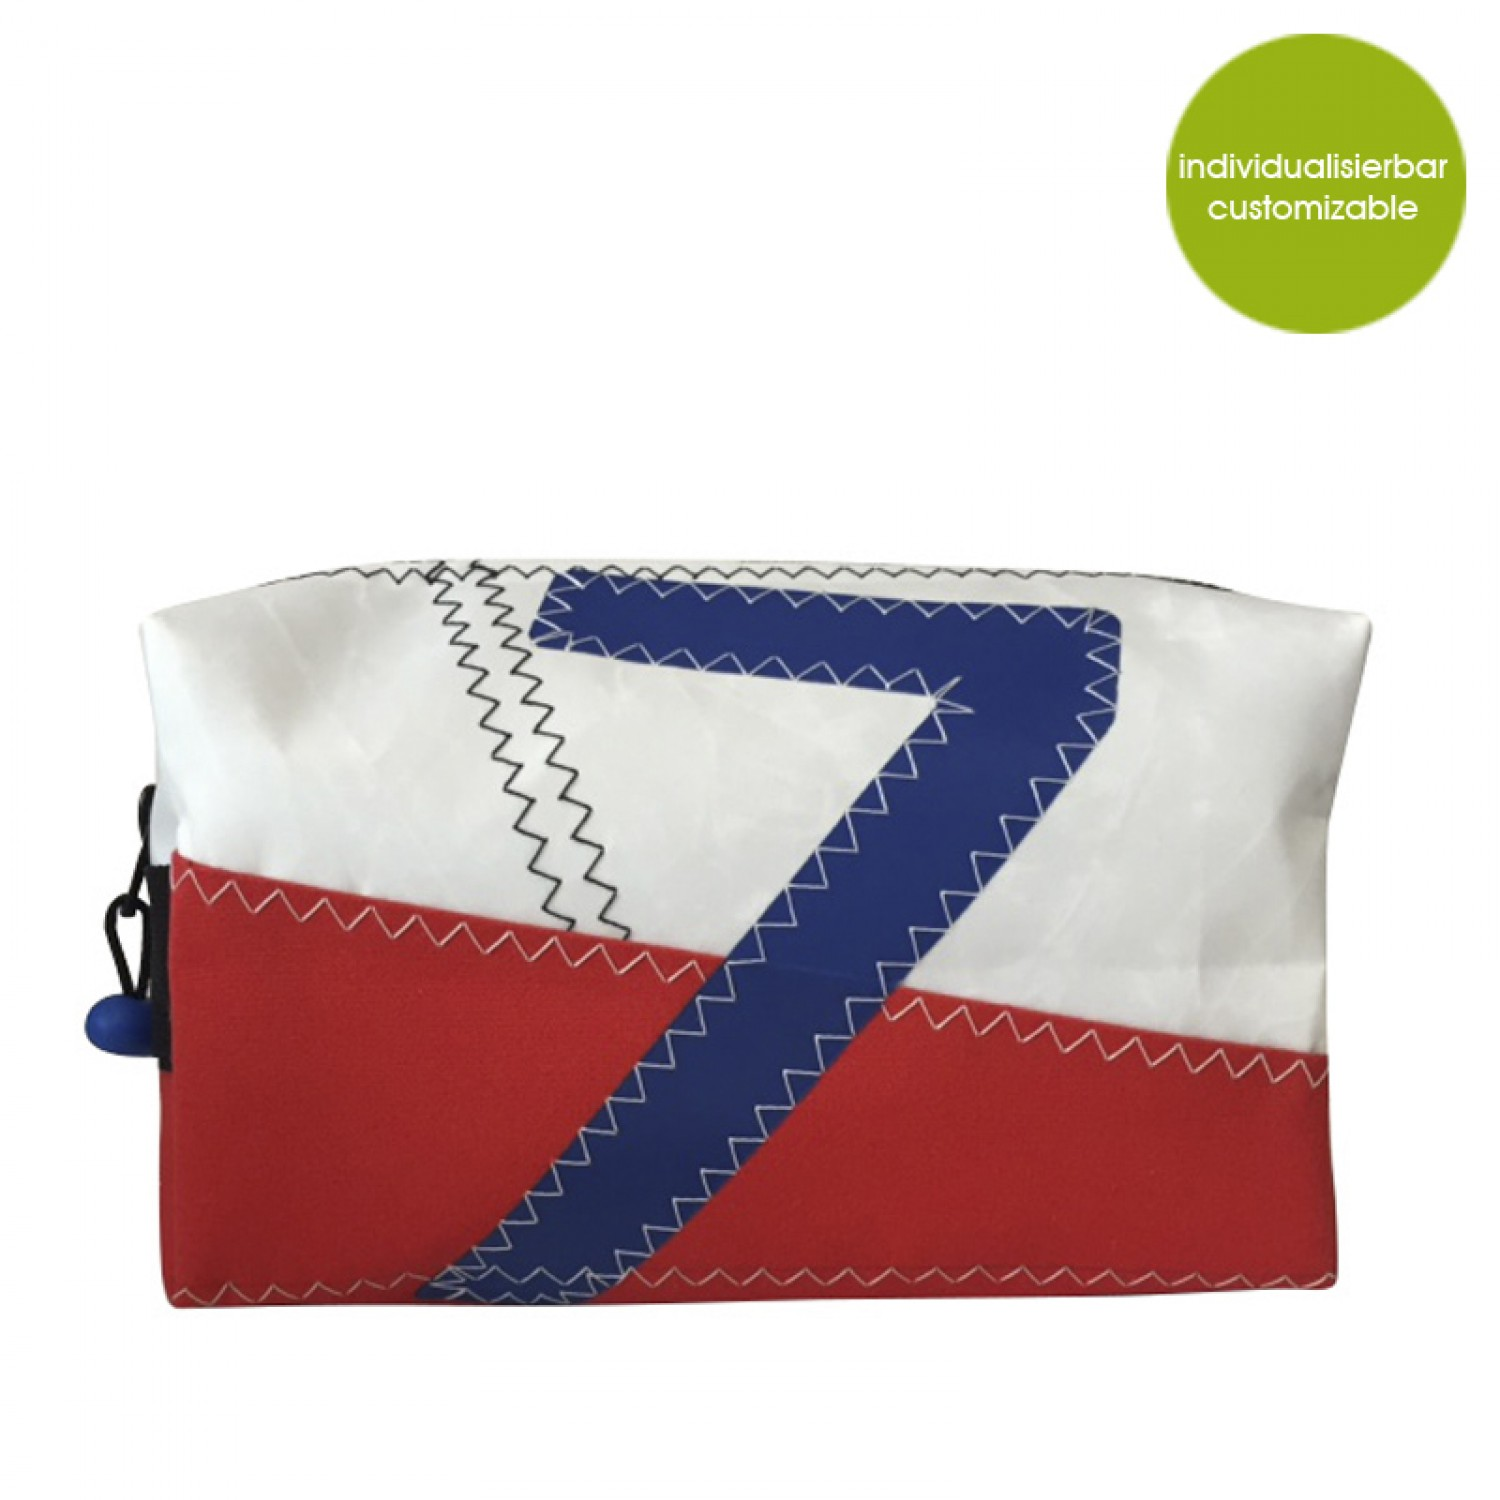 Individuelle Upcycling Canvas Kosmetiktasche Sail Boat 7